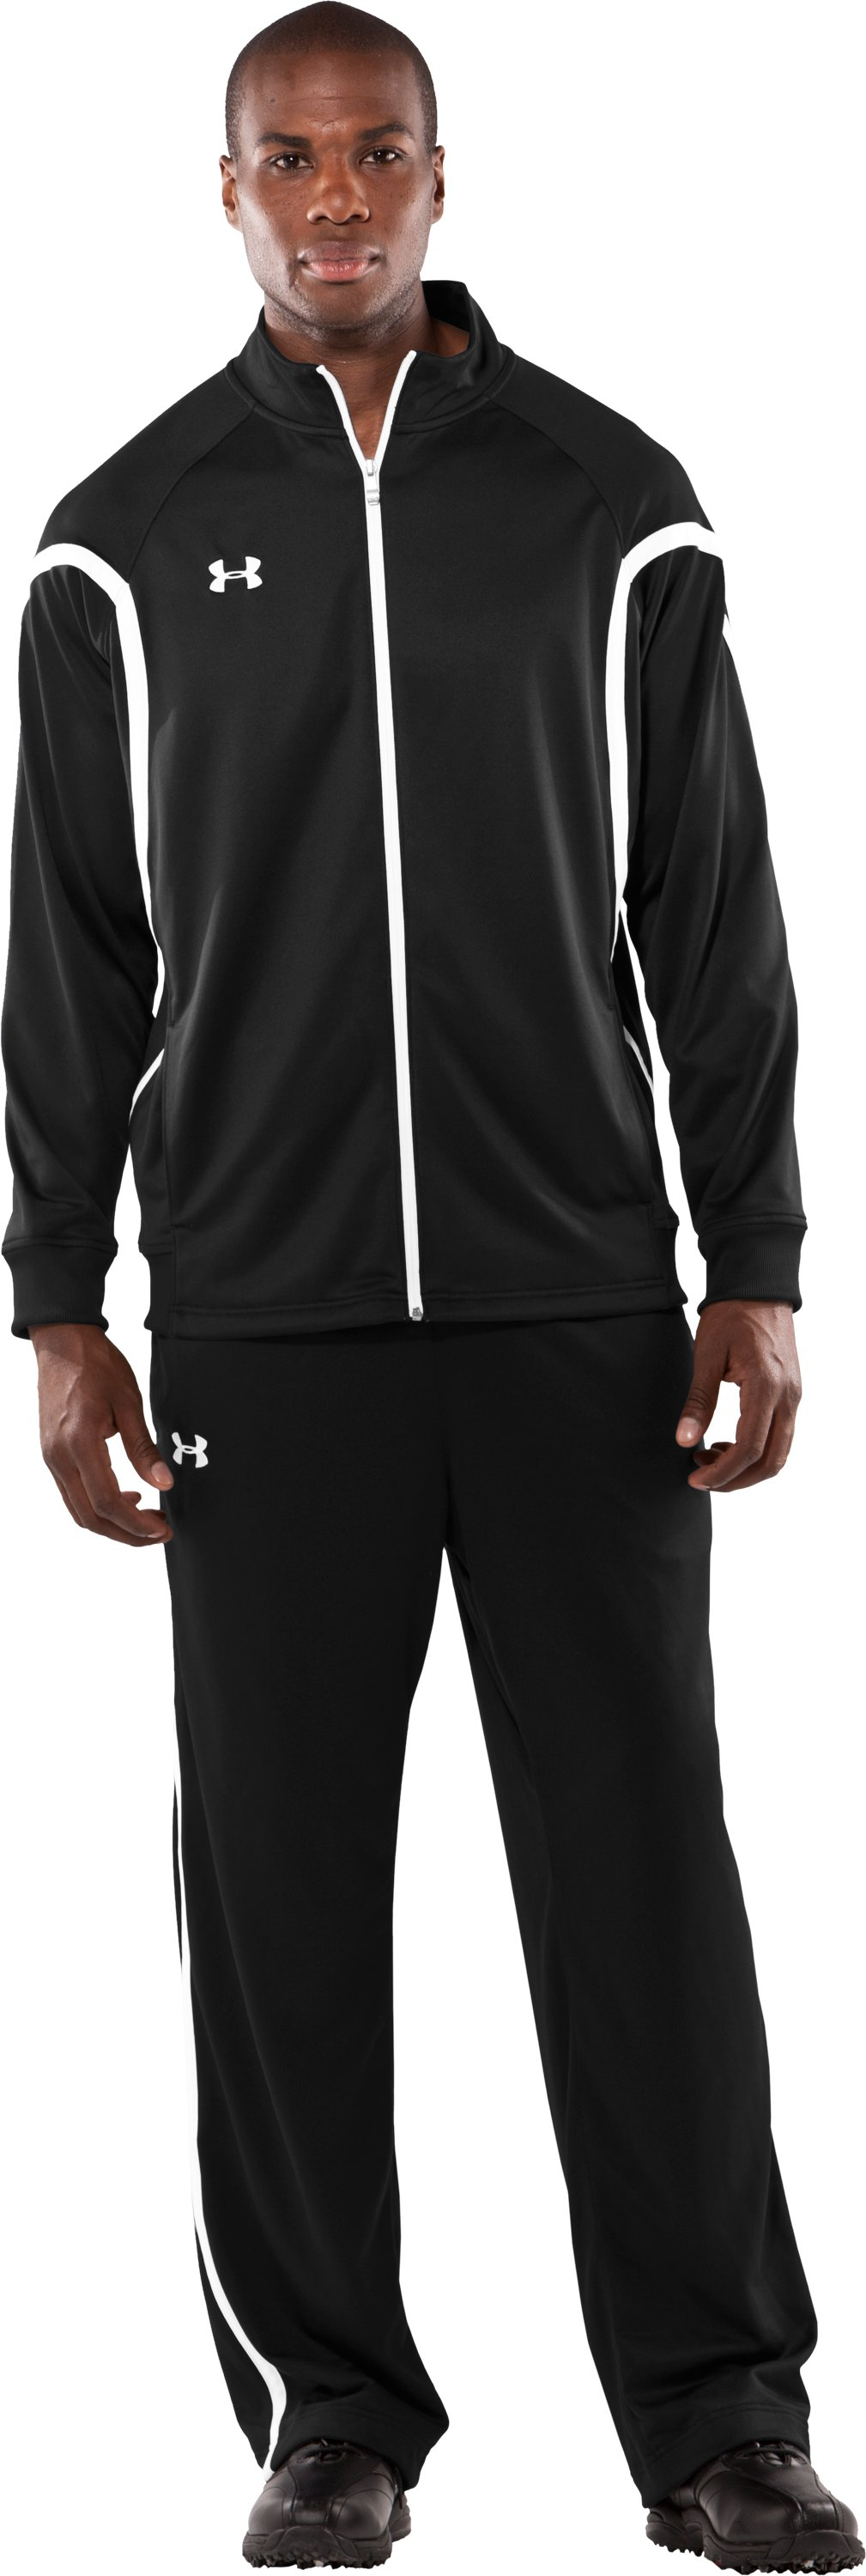 Men's Team Knit Warm-Up Jacket, Black